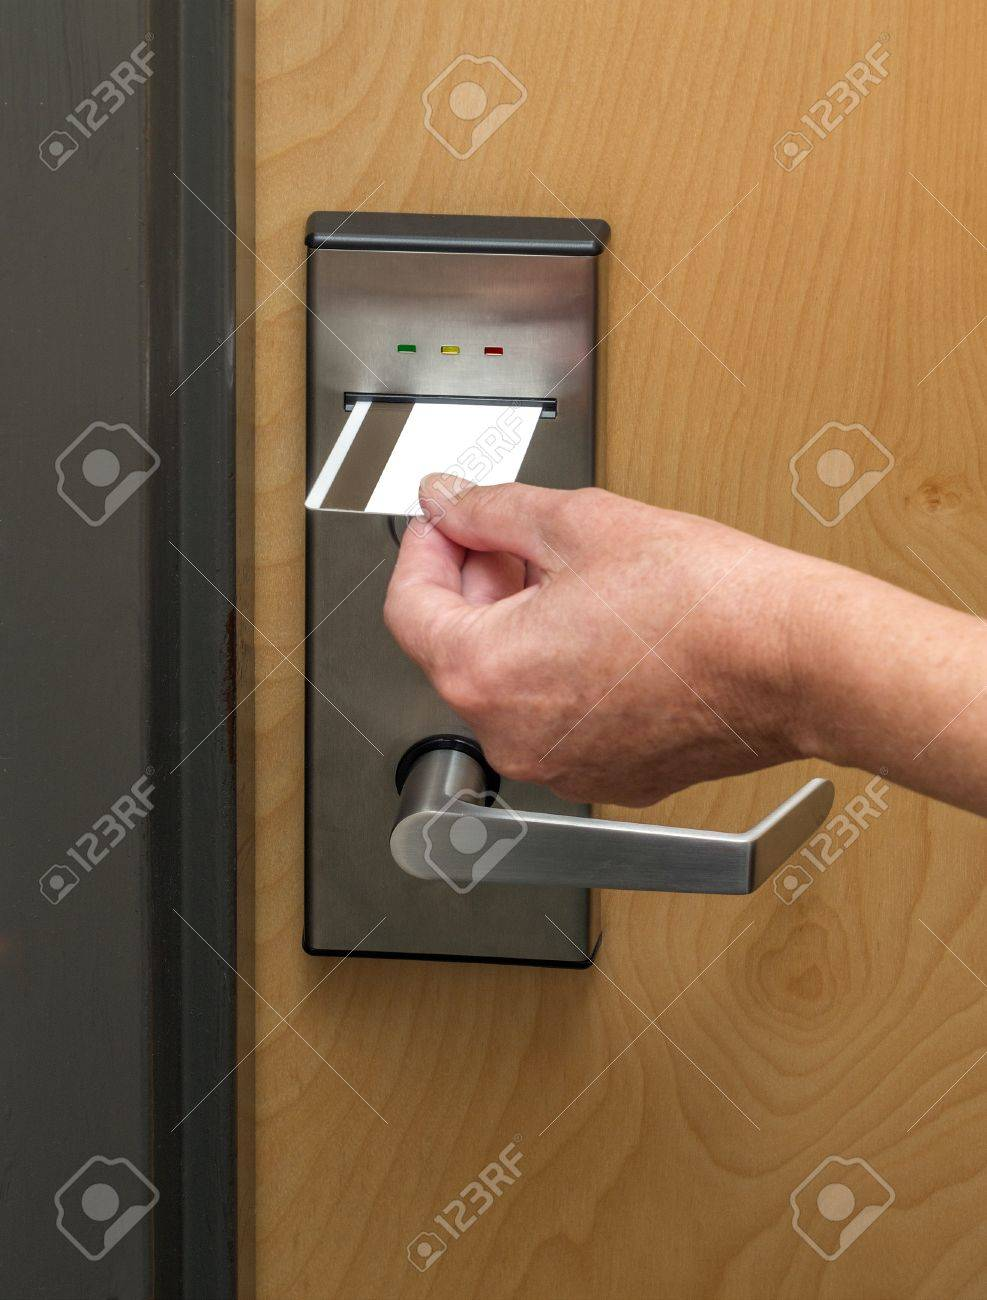 Keycard used to open hotel room door Stock Photo - 19828810